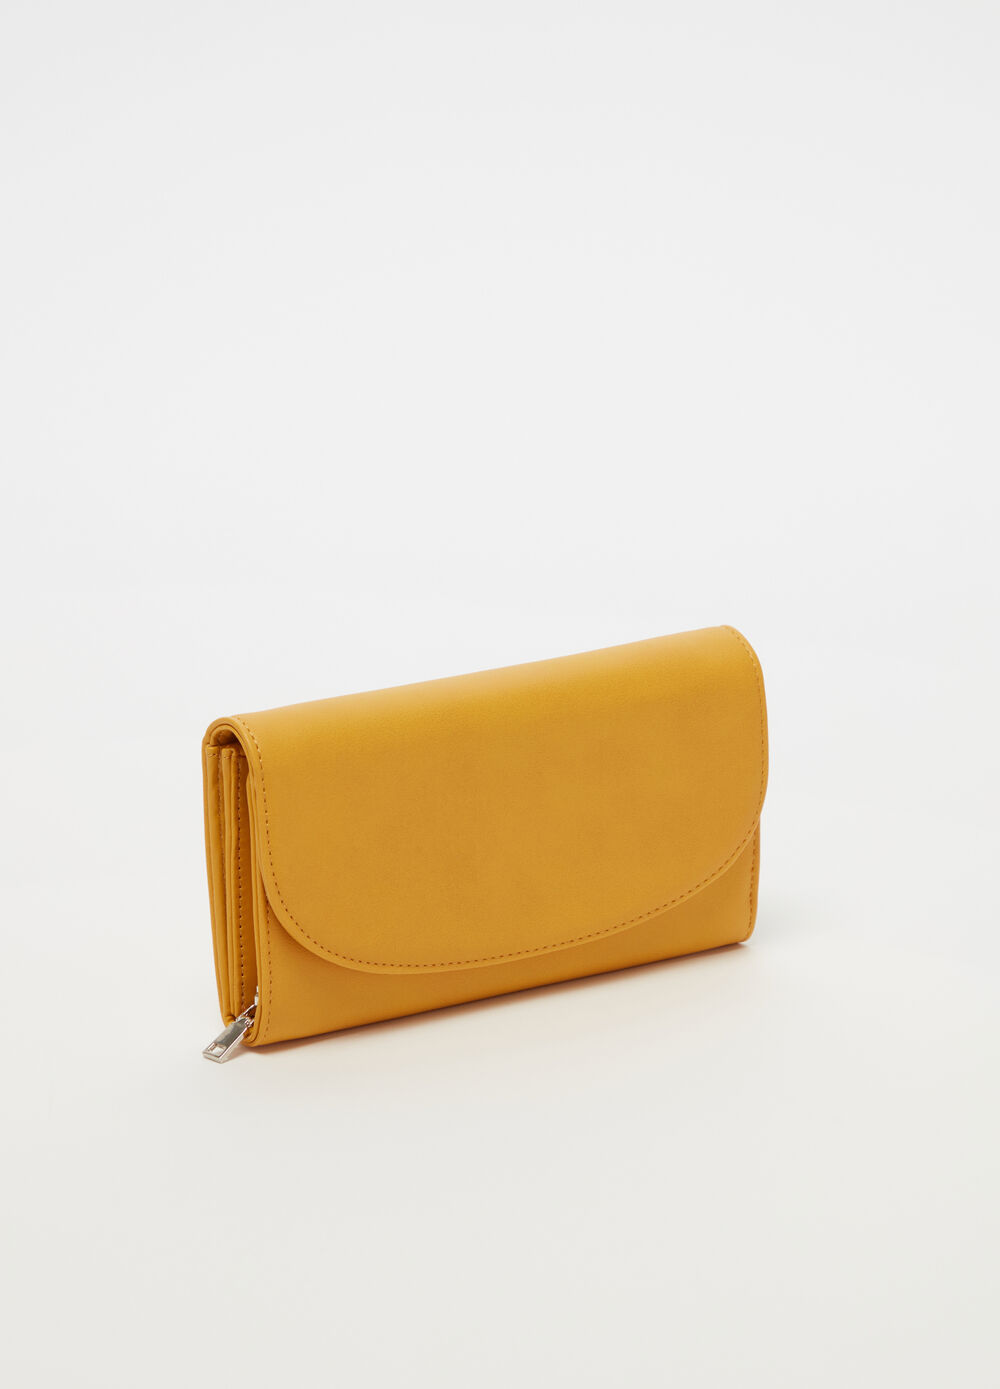 Wallet with flap, pocket and zip